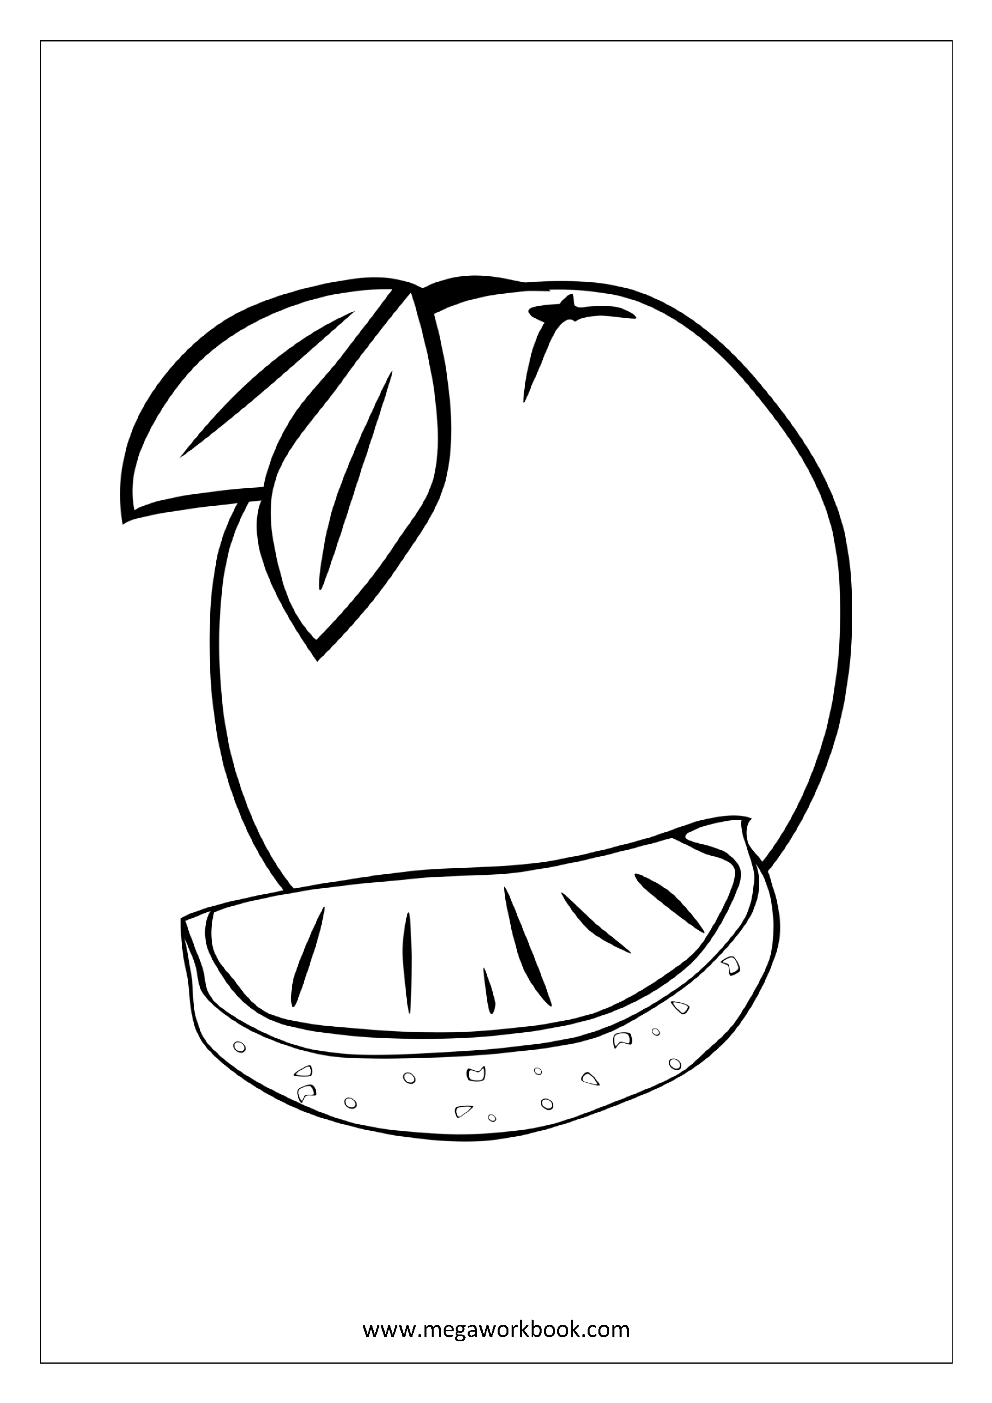 Fruit Coloring Pages - Vegetable Coloring Pages - Food Coloring ...